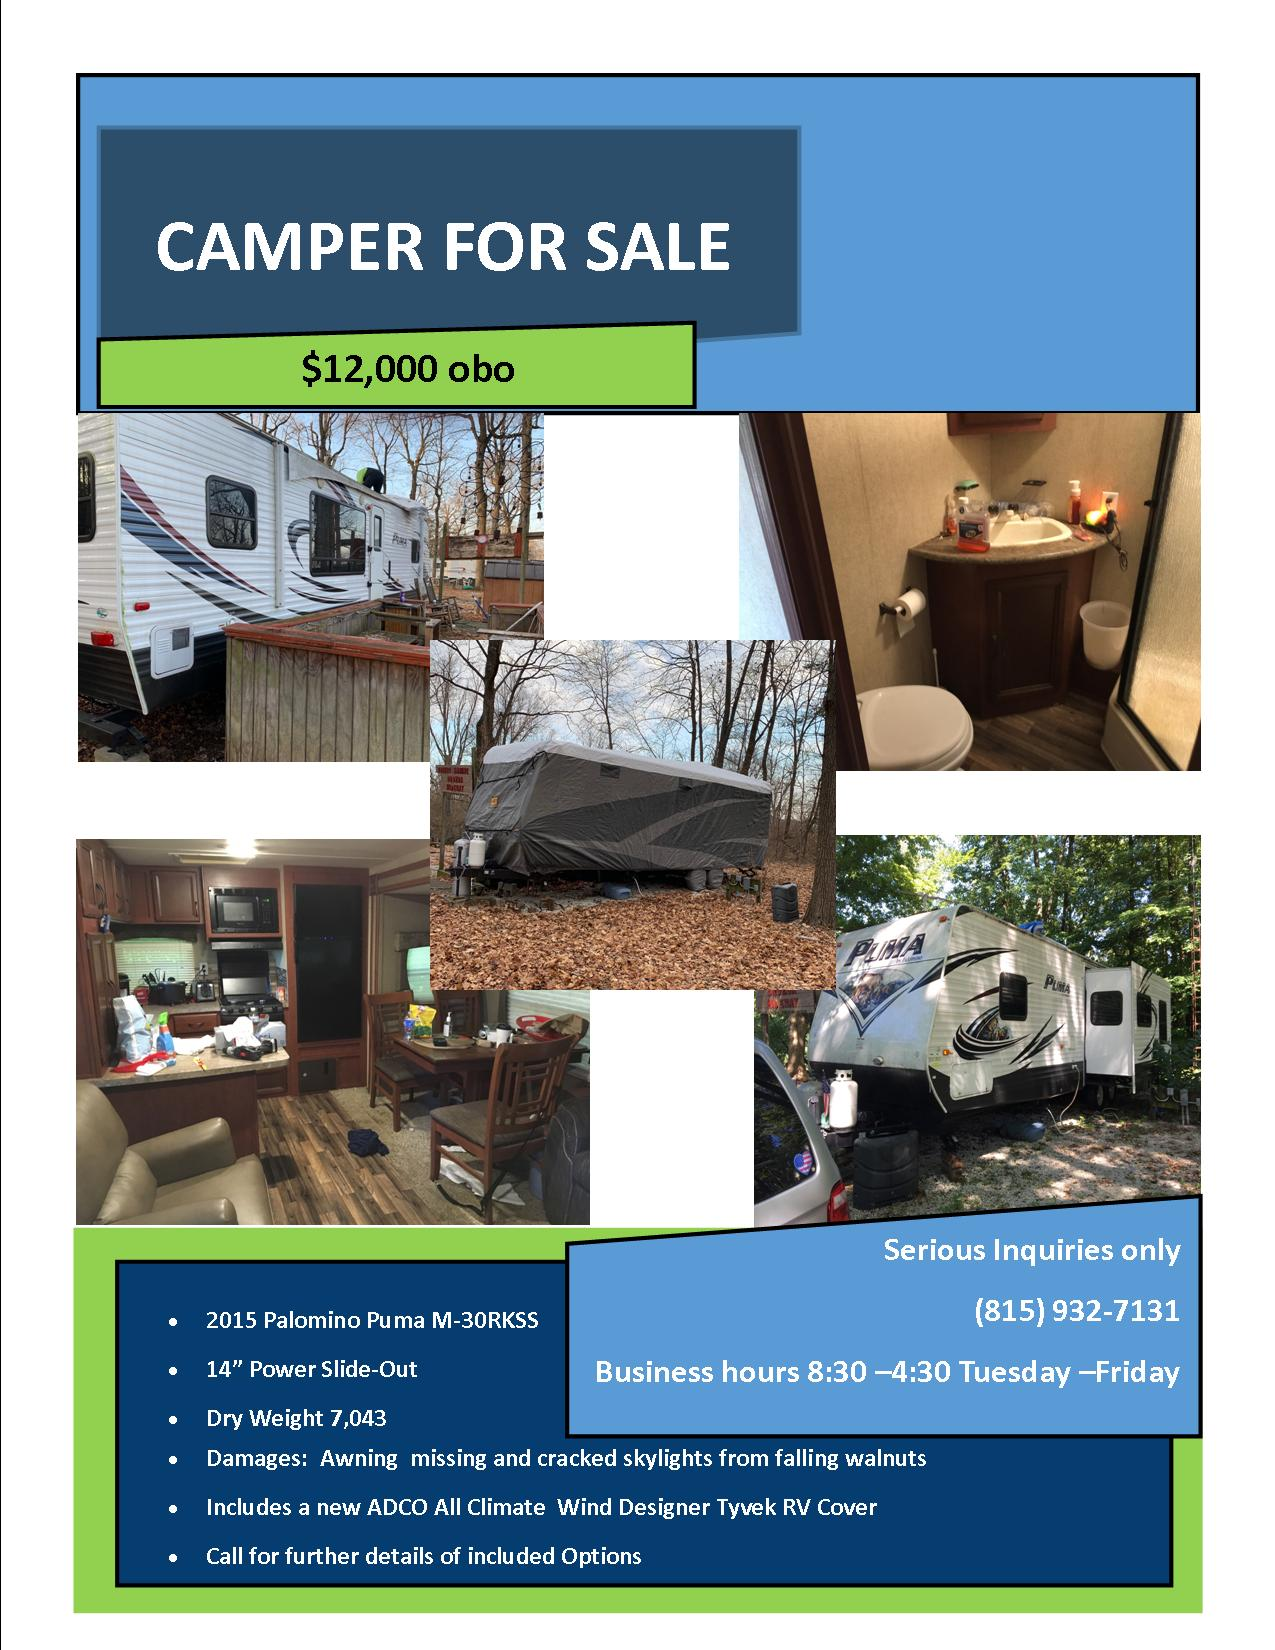 Drozda Camper sale flyer